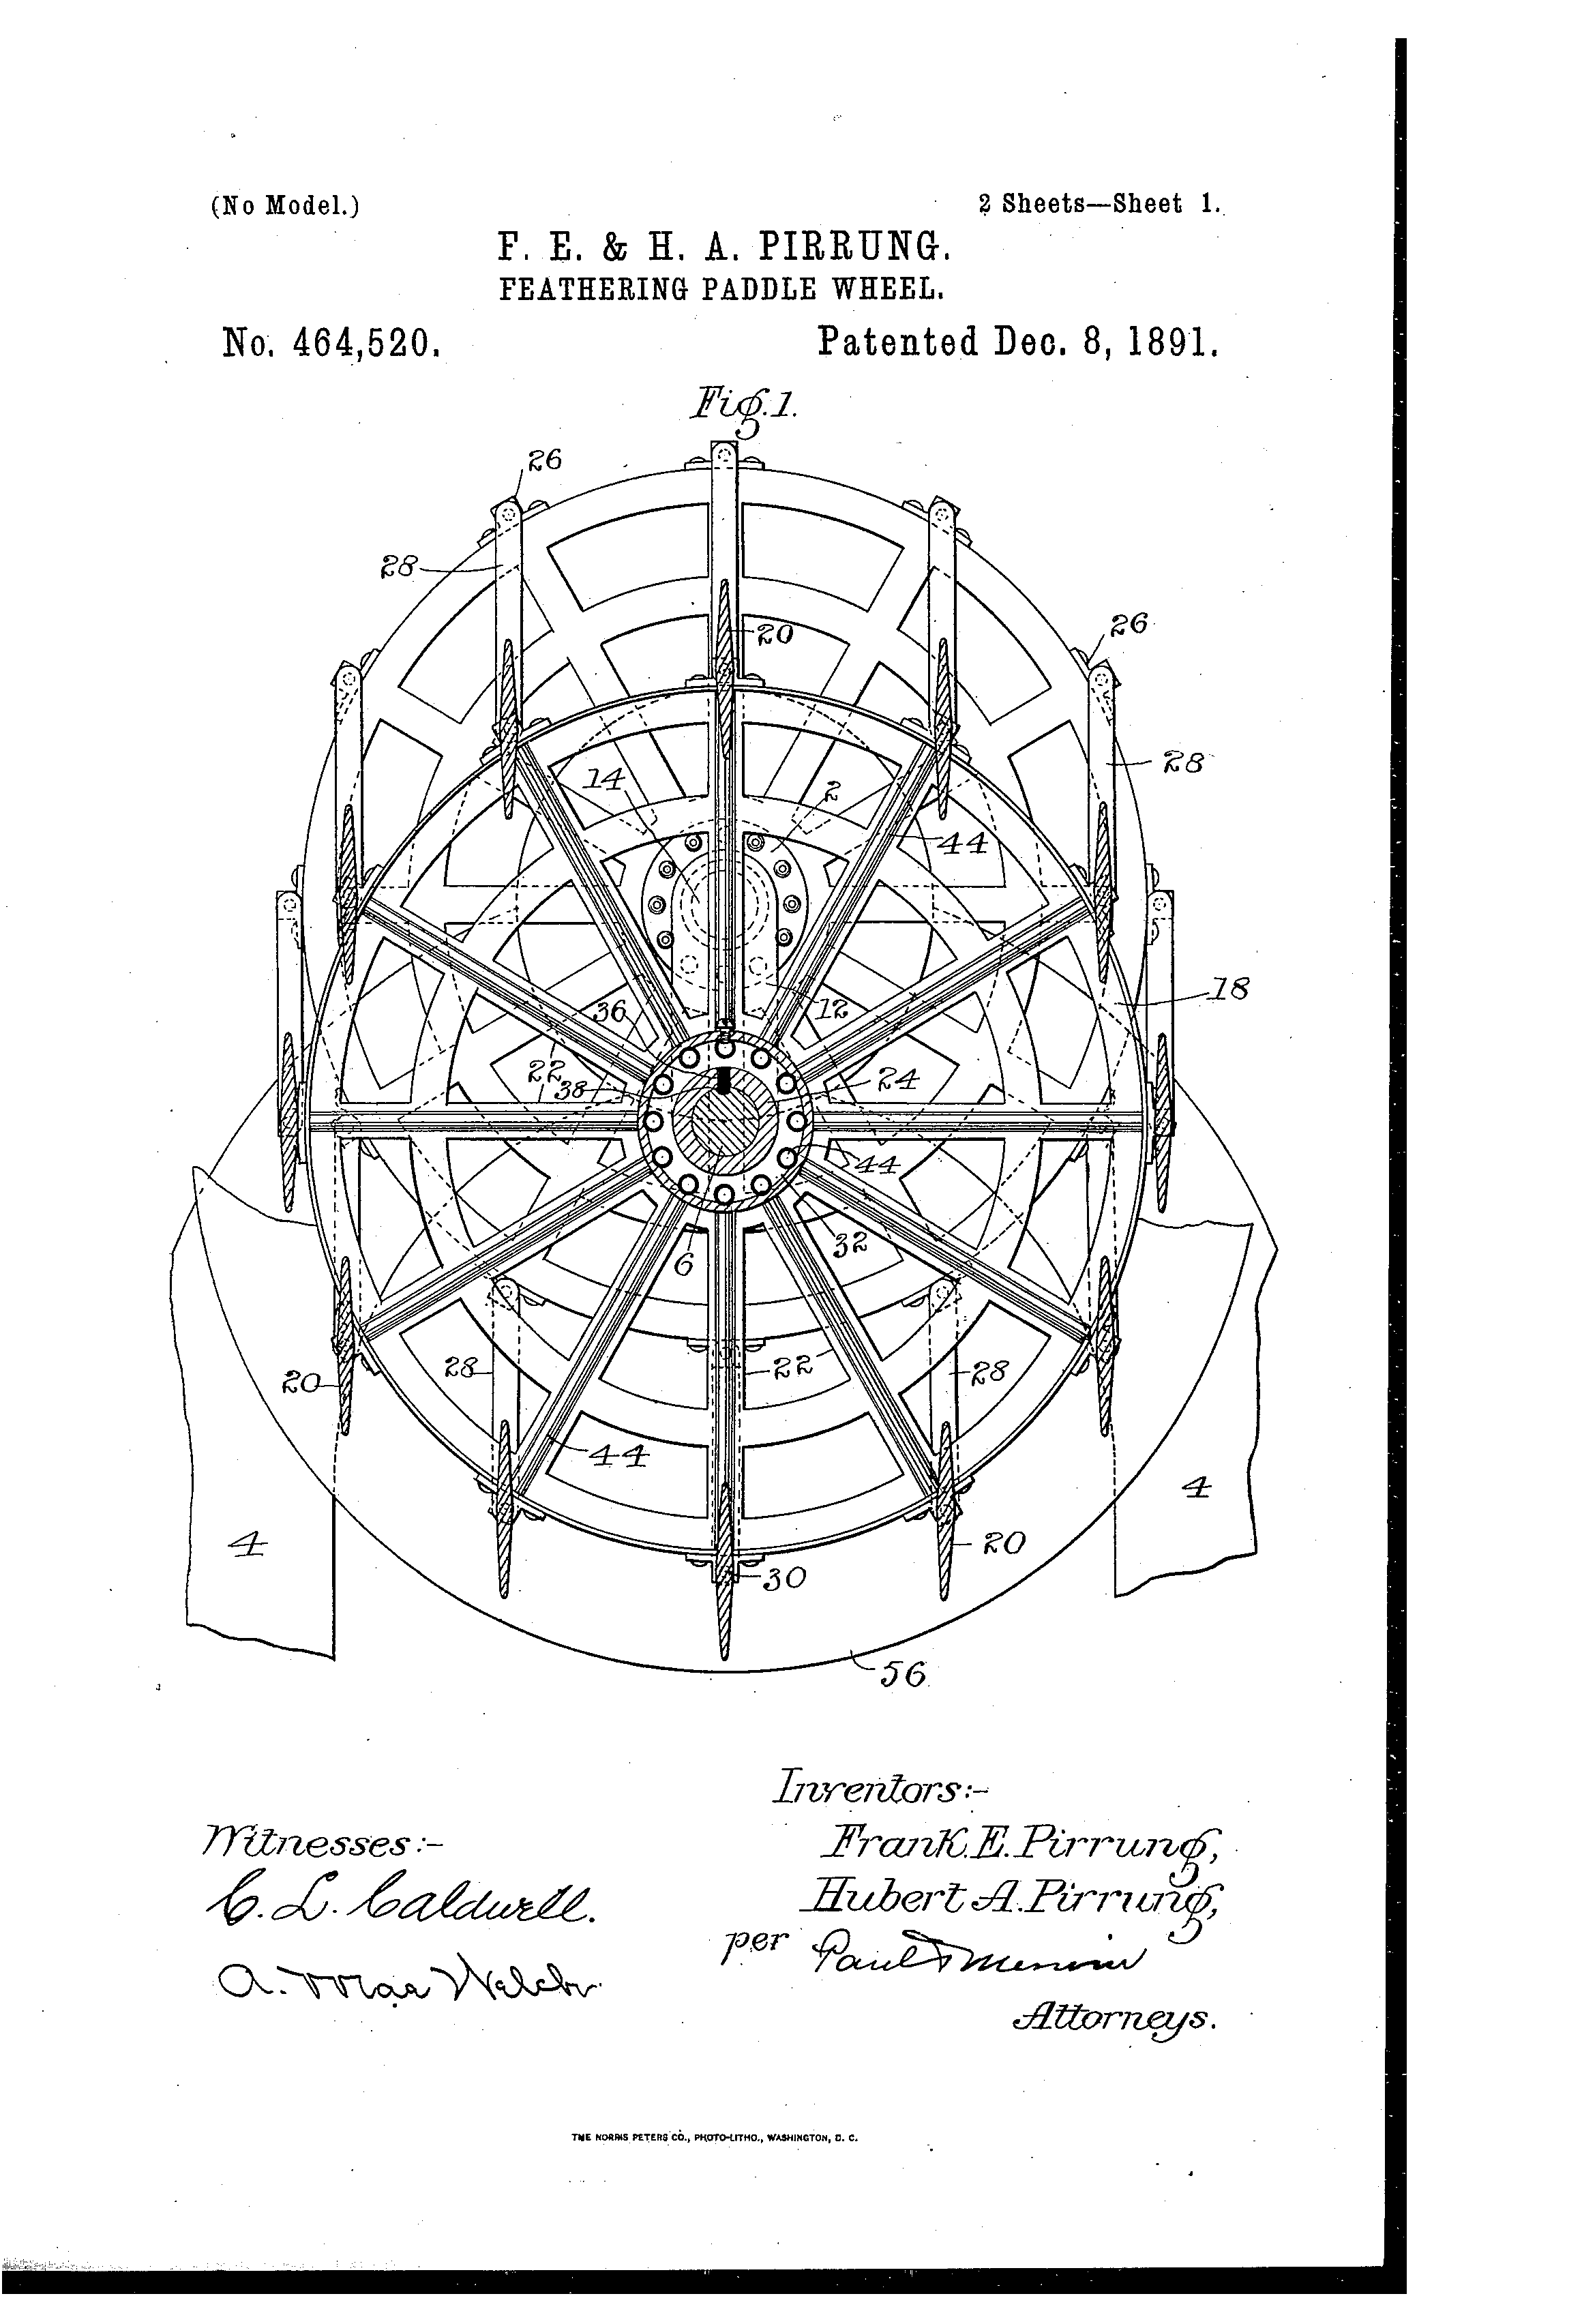 patent us464520 - feathering paddle-wheel